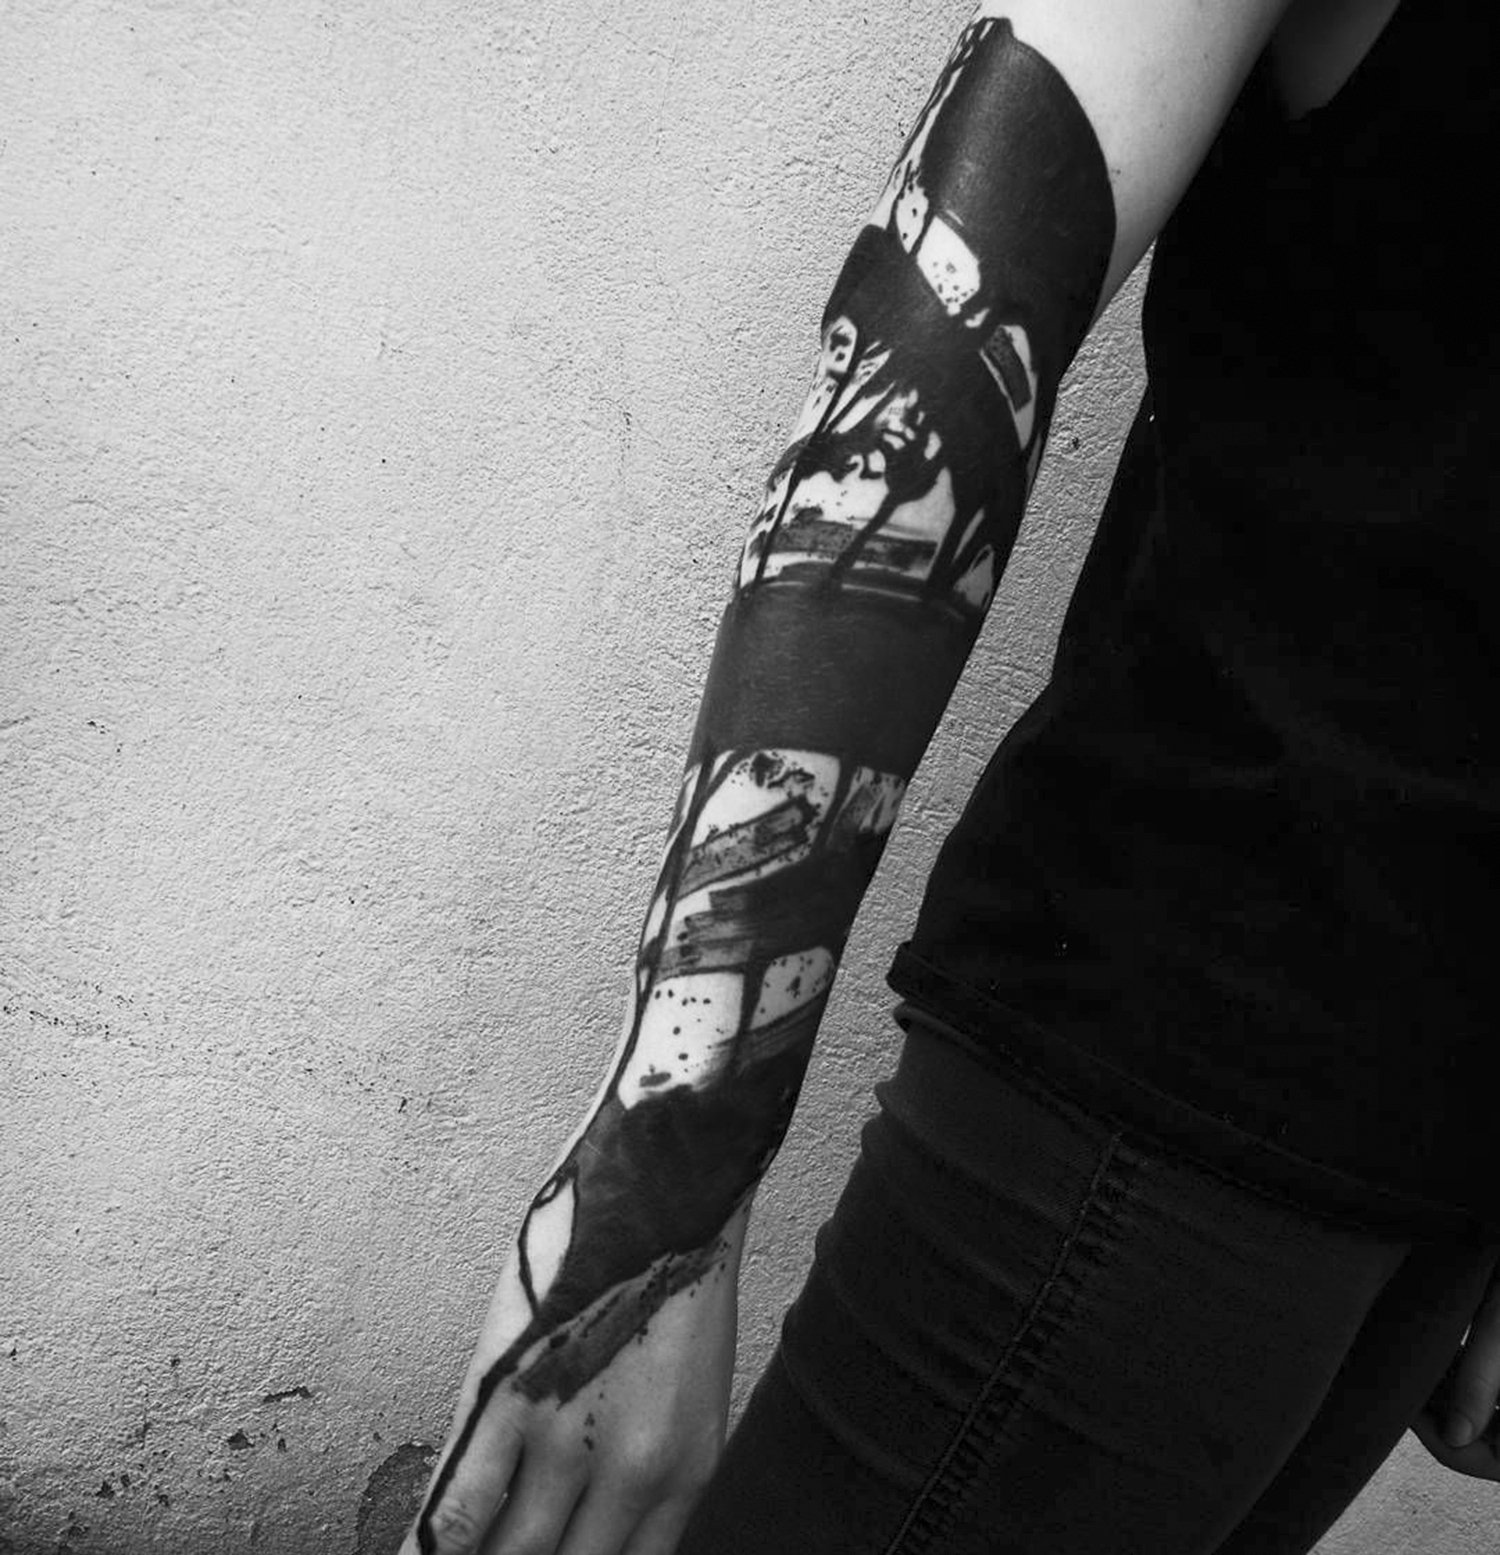 brushstroke blackwork tattoo on arm, painting style